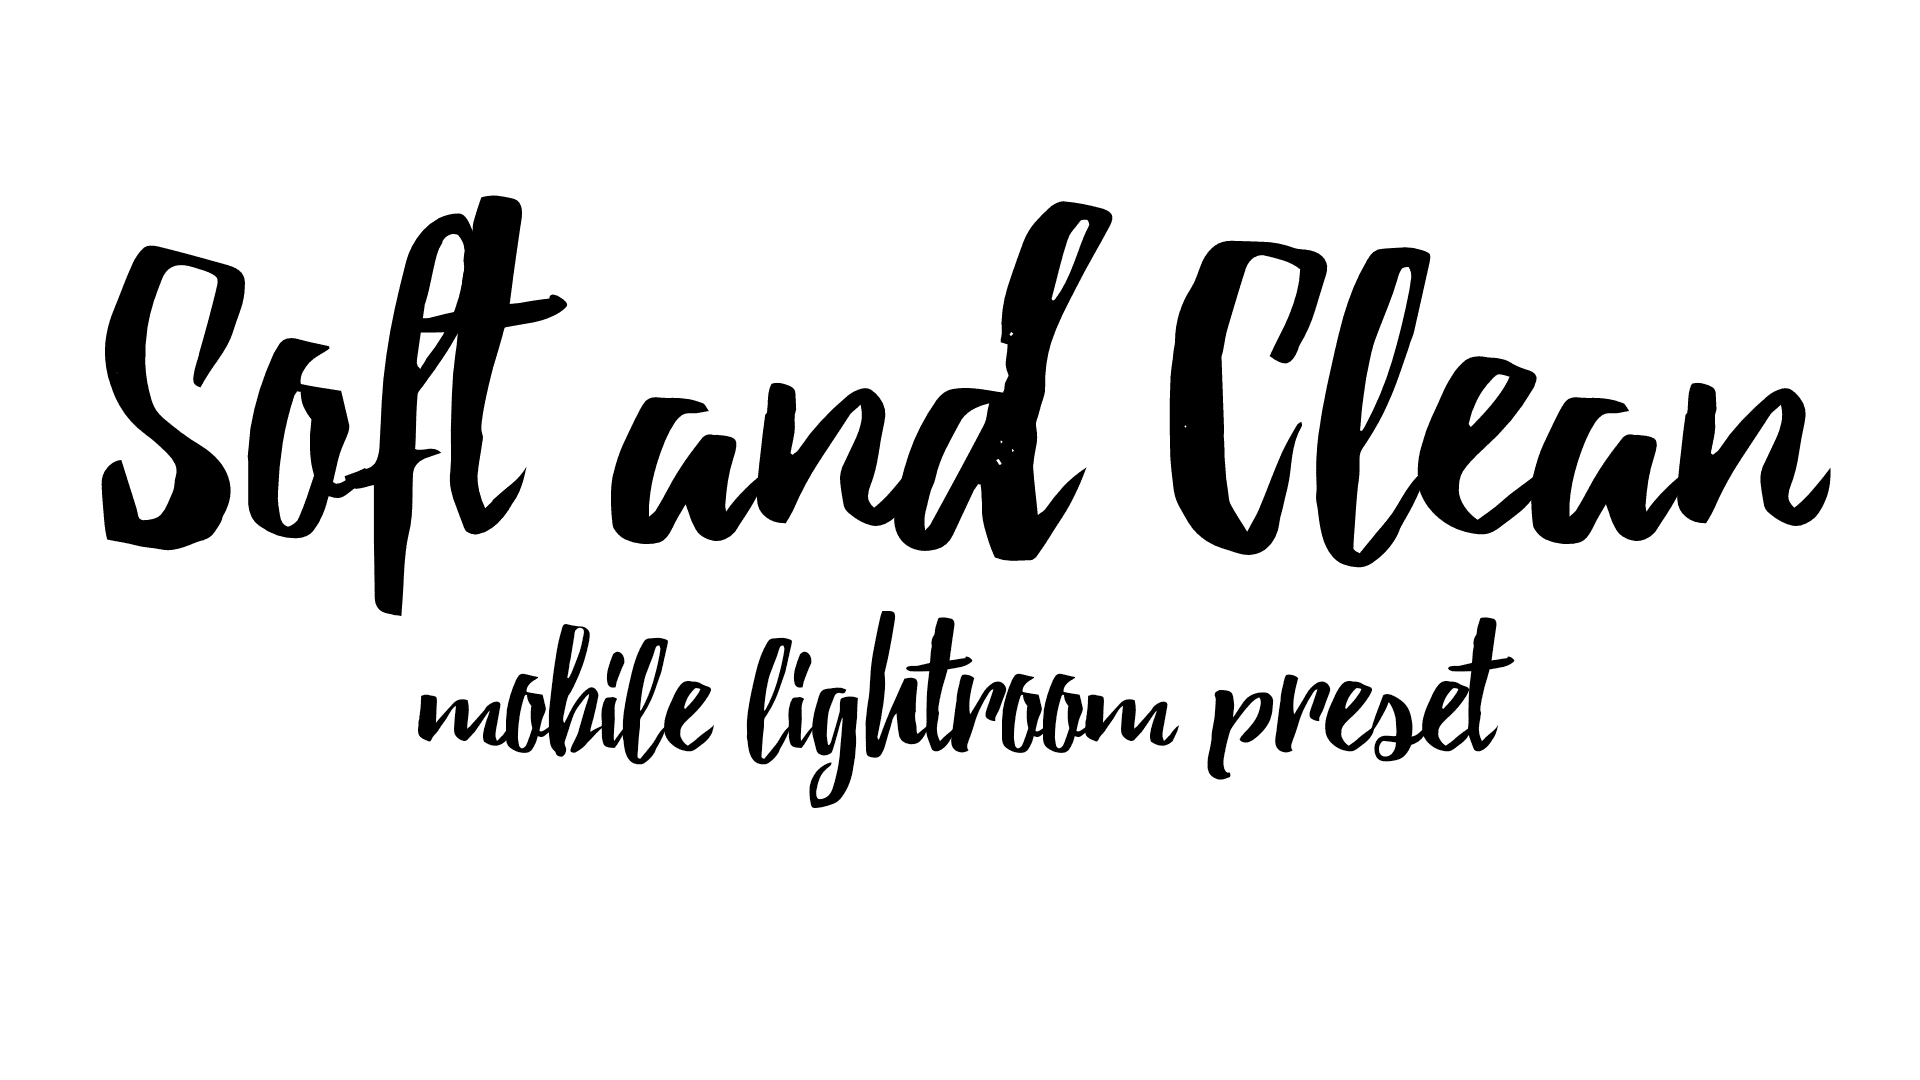 Soft and Clean text logo